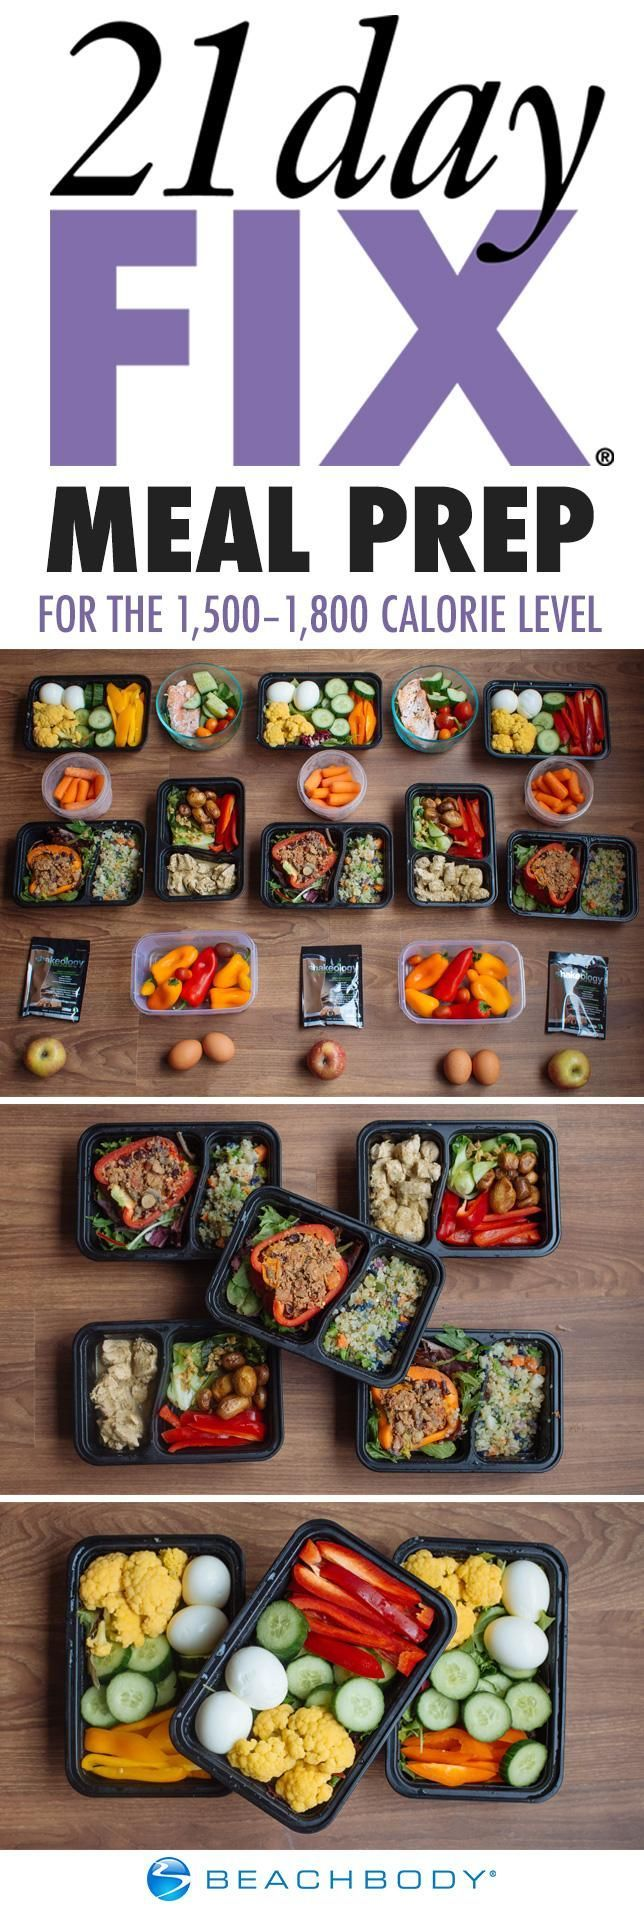 If you've fallen into a meal prep rut, it's time to try something new! Click through for a full 21 Day Fix meal prep menu, complete with tasty recipes, a grocery list, and preparation instructions. // Beachbody // http://BeachbodyBlog.com // 21 Day Fix Approved // nutrition // clean eating // fitfood